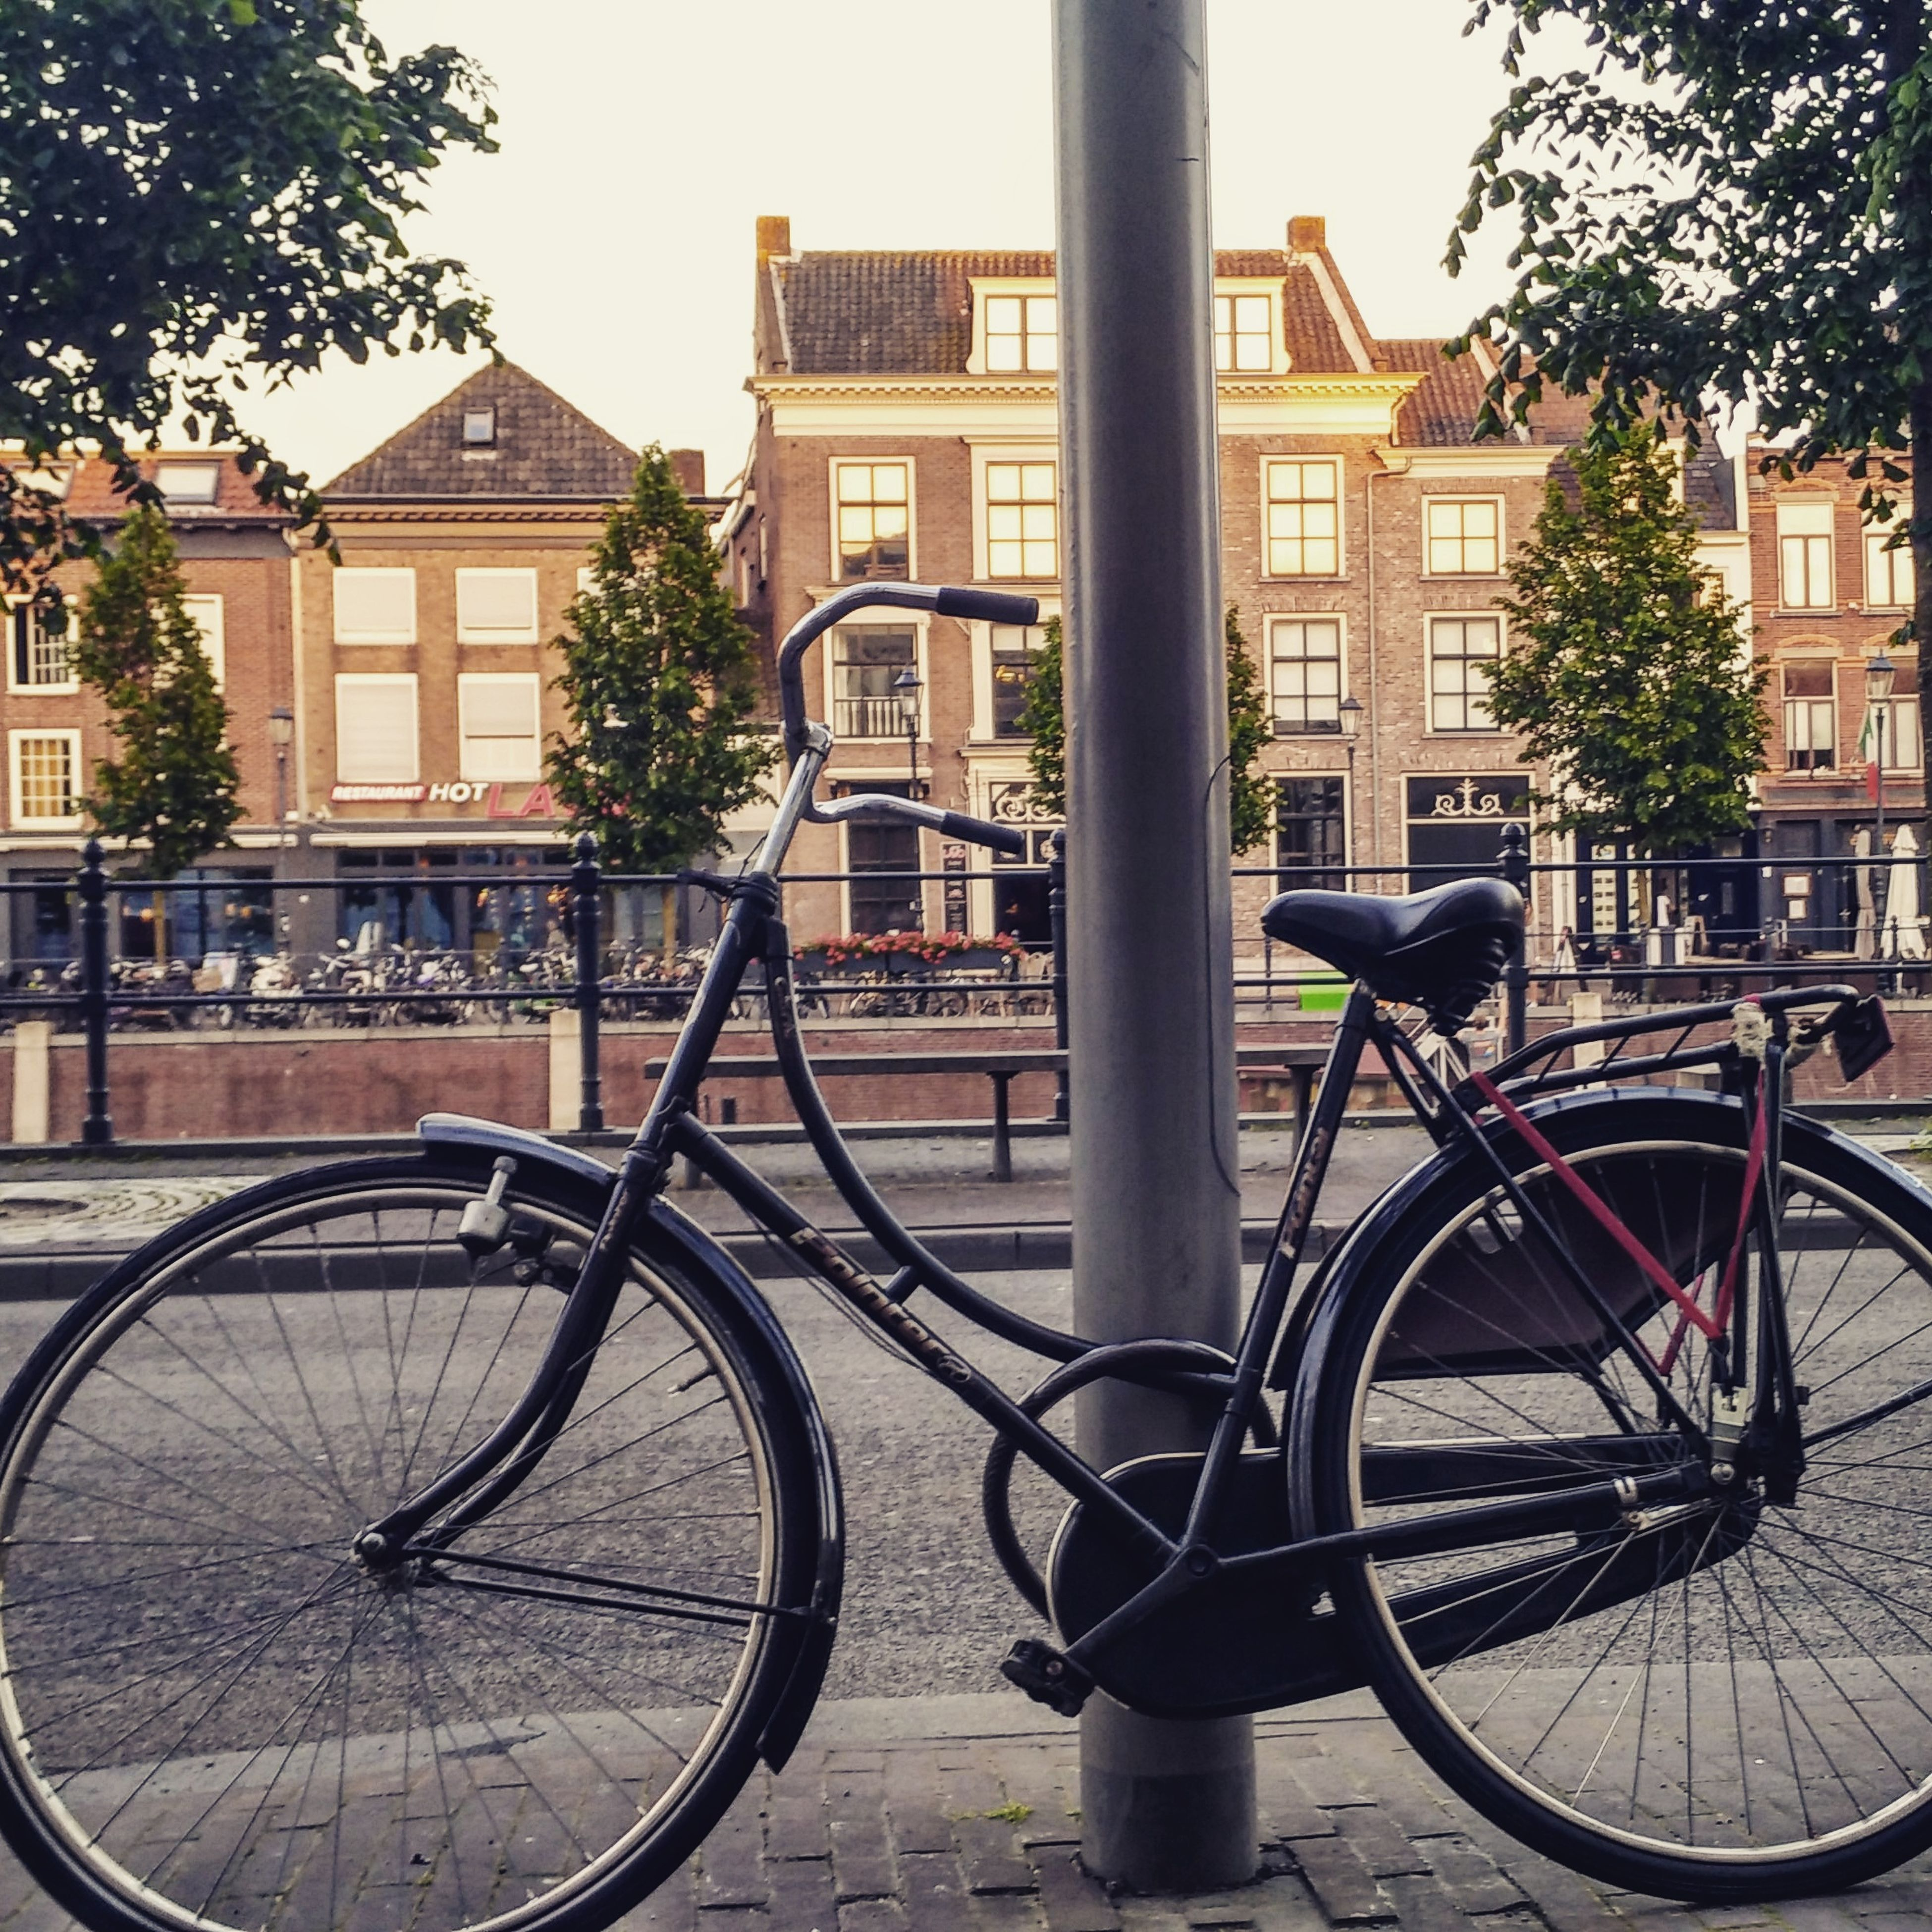 bicycle, architecture, building exterior, built structure, transportation, mode of transport, land vehicle, city, parked, railing, stationary, parking, tree, building, day, street, residential structure, outdoors, sky, residential building